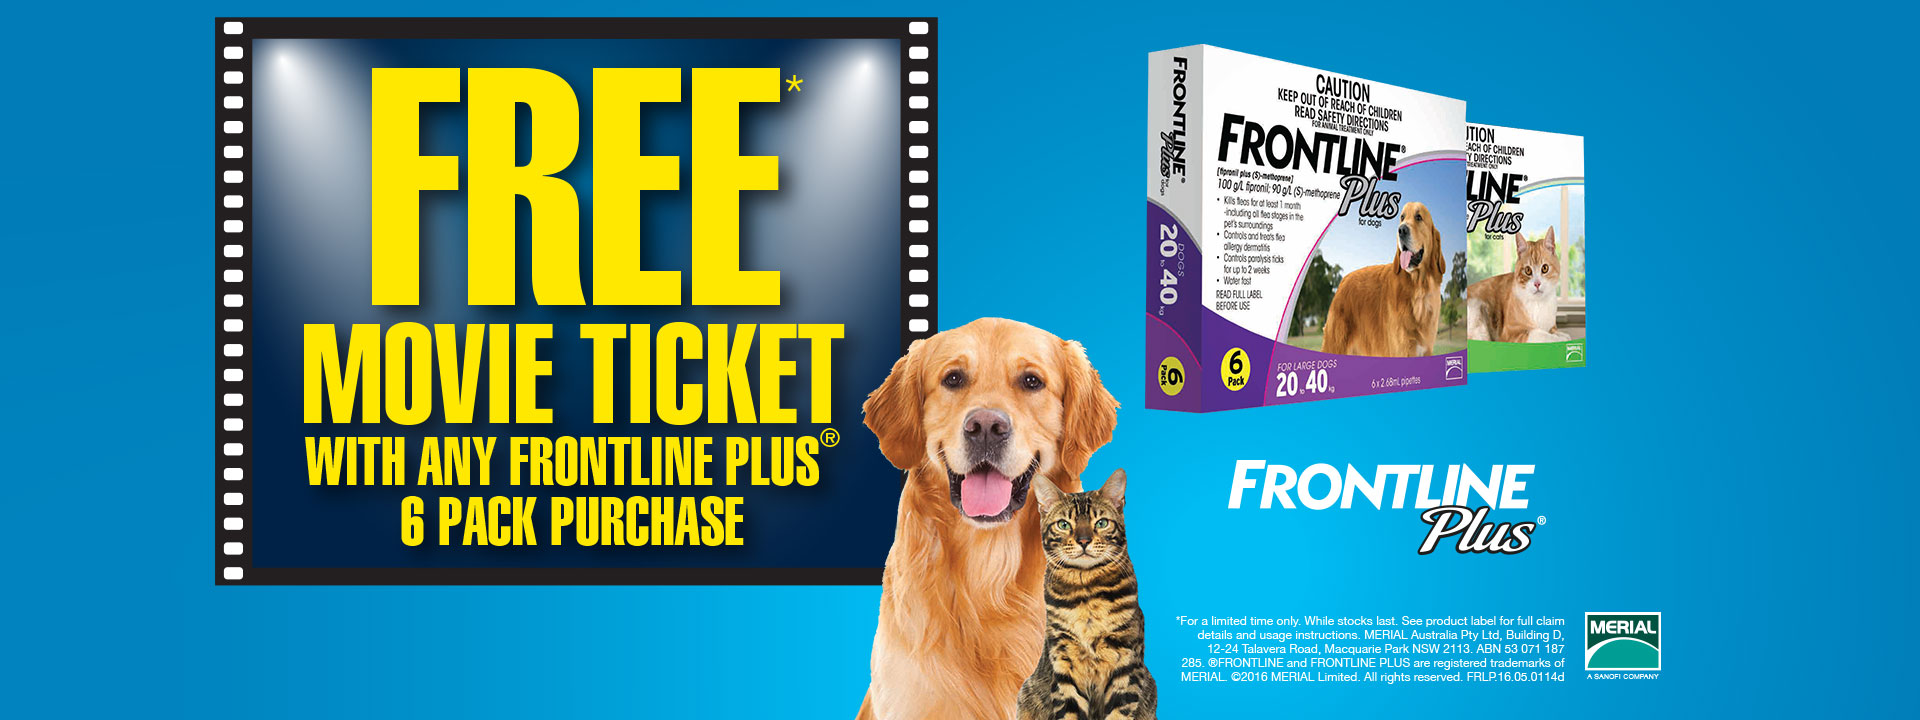 Frontline plus coupons 2019